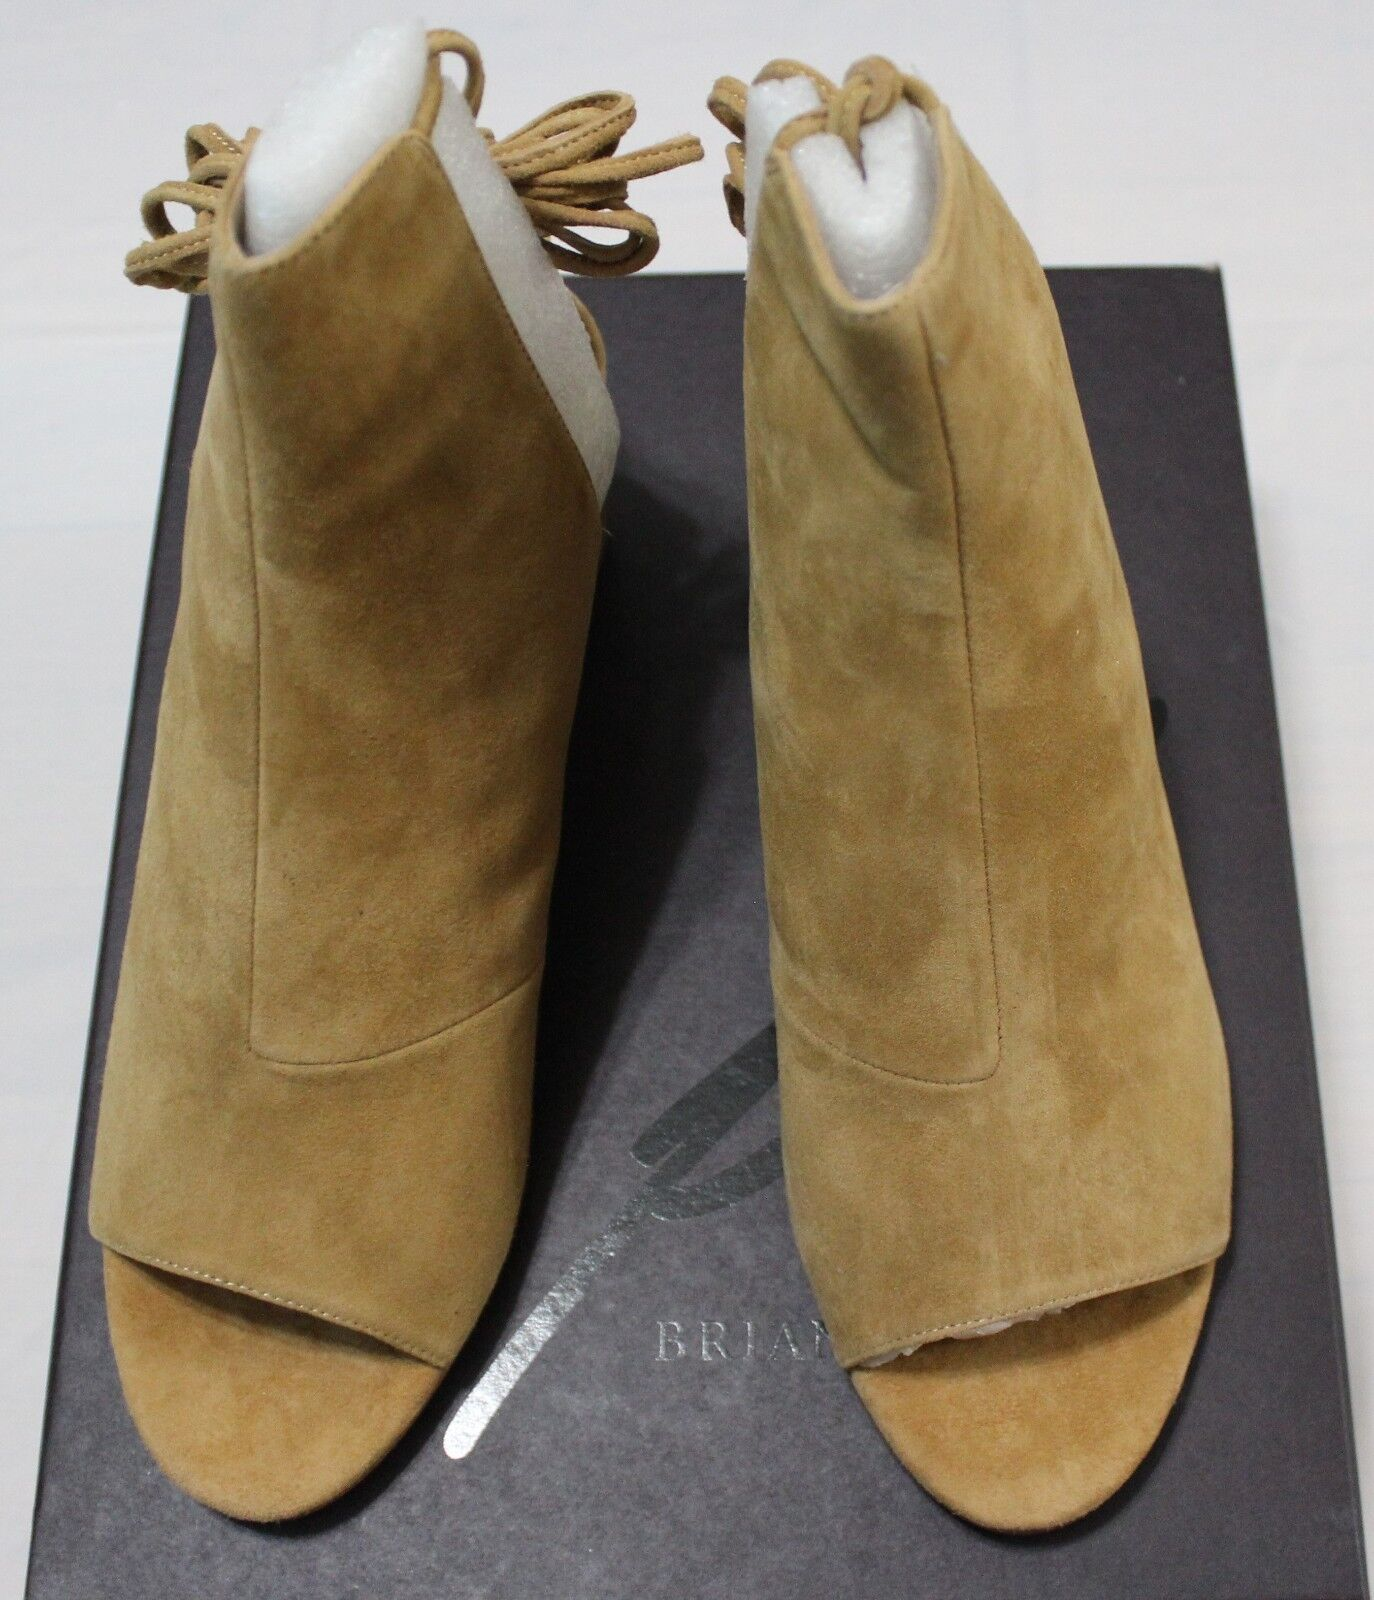 160 BRIAN ATWOOD BALI CAMEL OPEN TOE SUEDE BOOTIE 8.5M